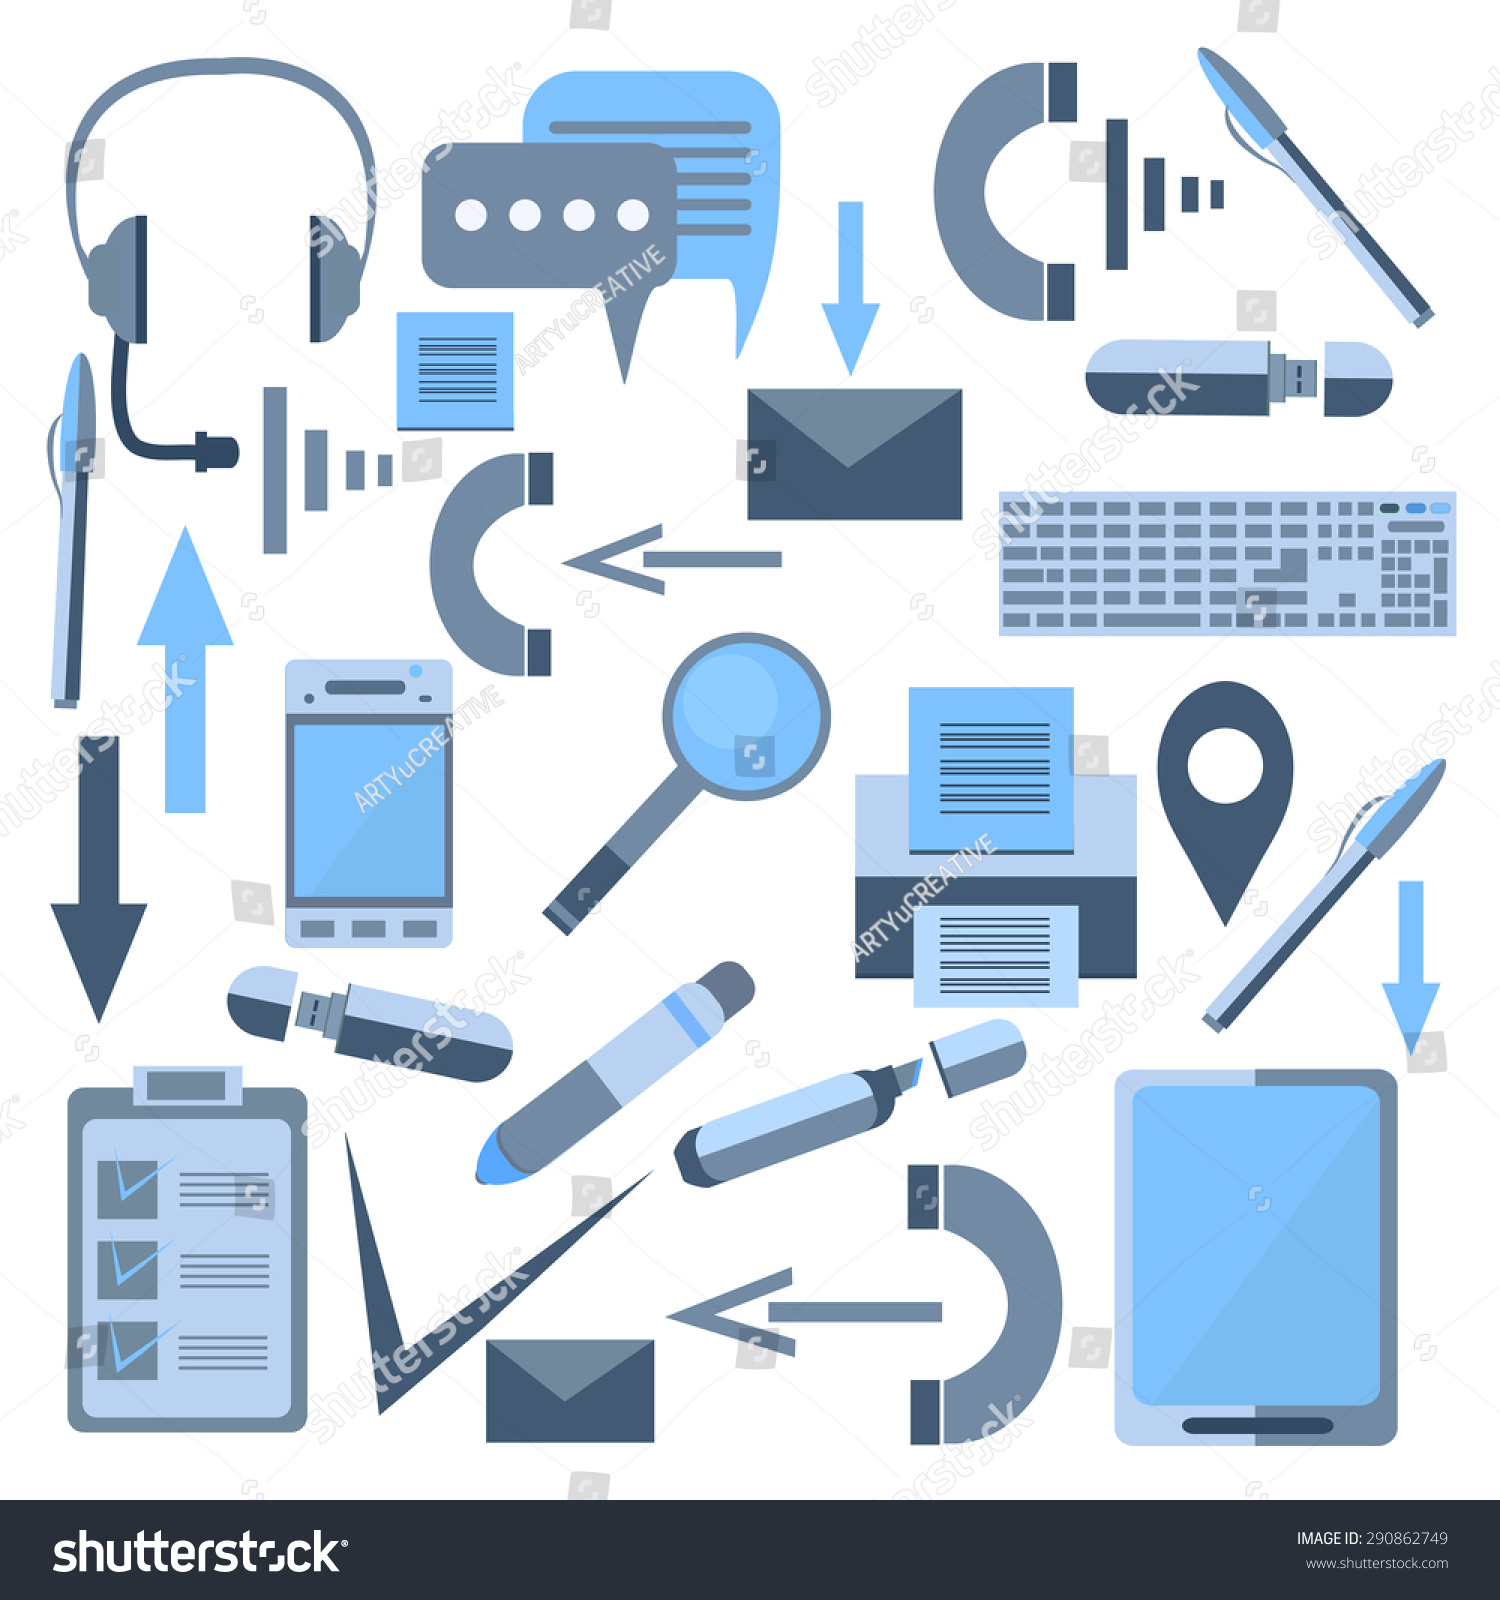 Set Isolated Icons Flat Style Elements Stock Vector 290862749 Shutterstock